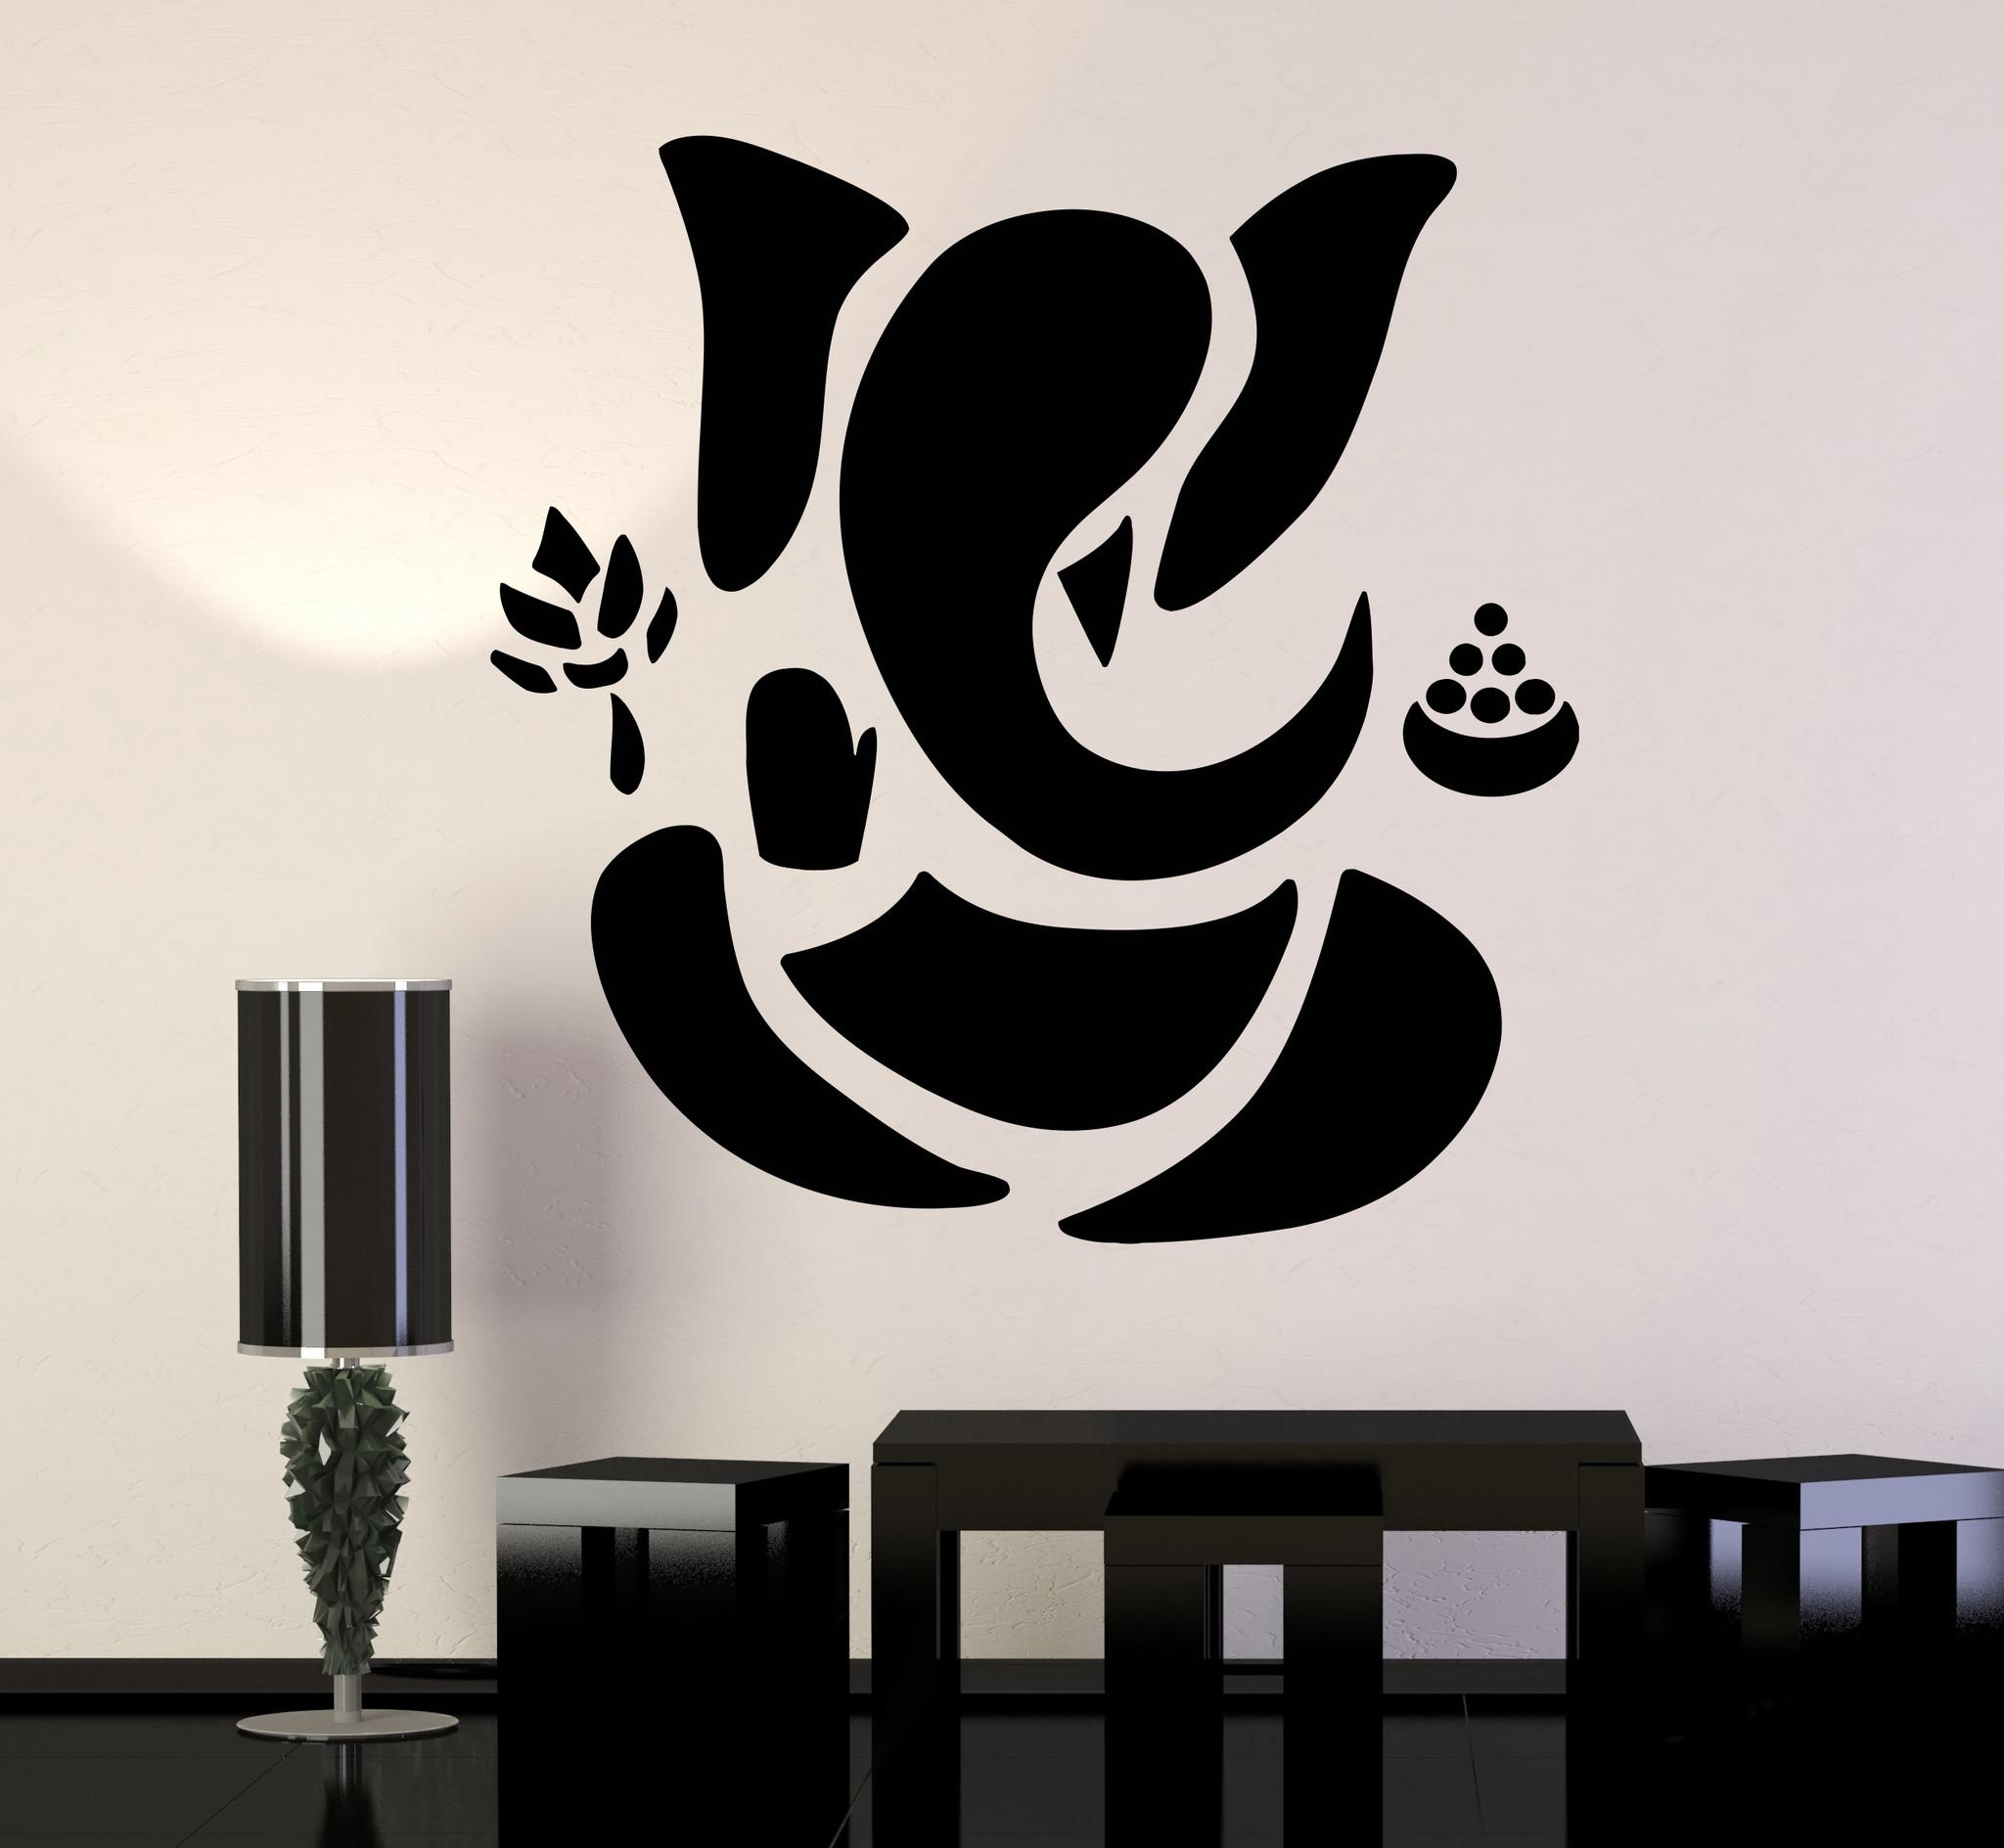 Stupendous Ganesh Canvas Wall Art Wall Room Decor Art Wall Decor Intended For Ganesh Wall Art (Image 18 of 20)